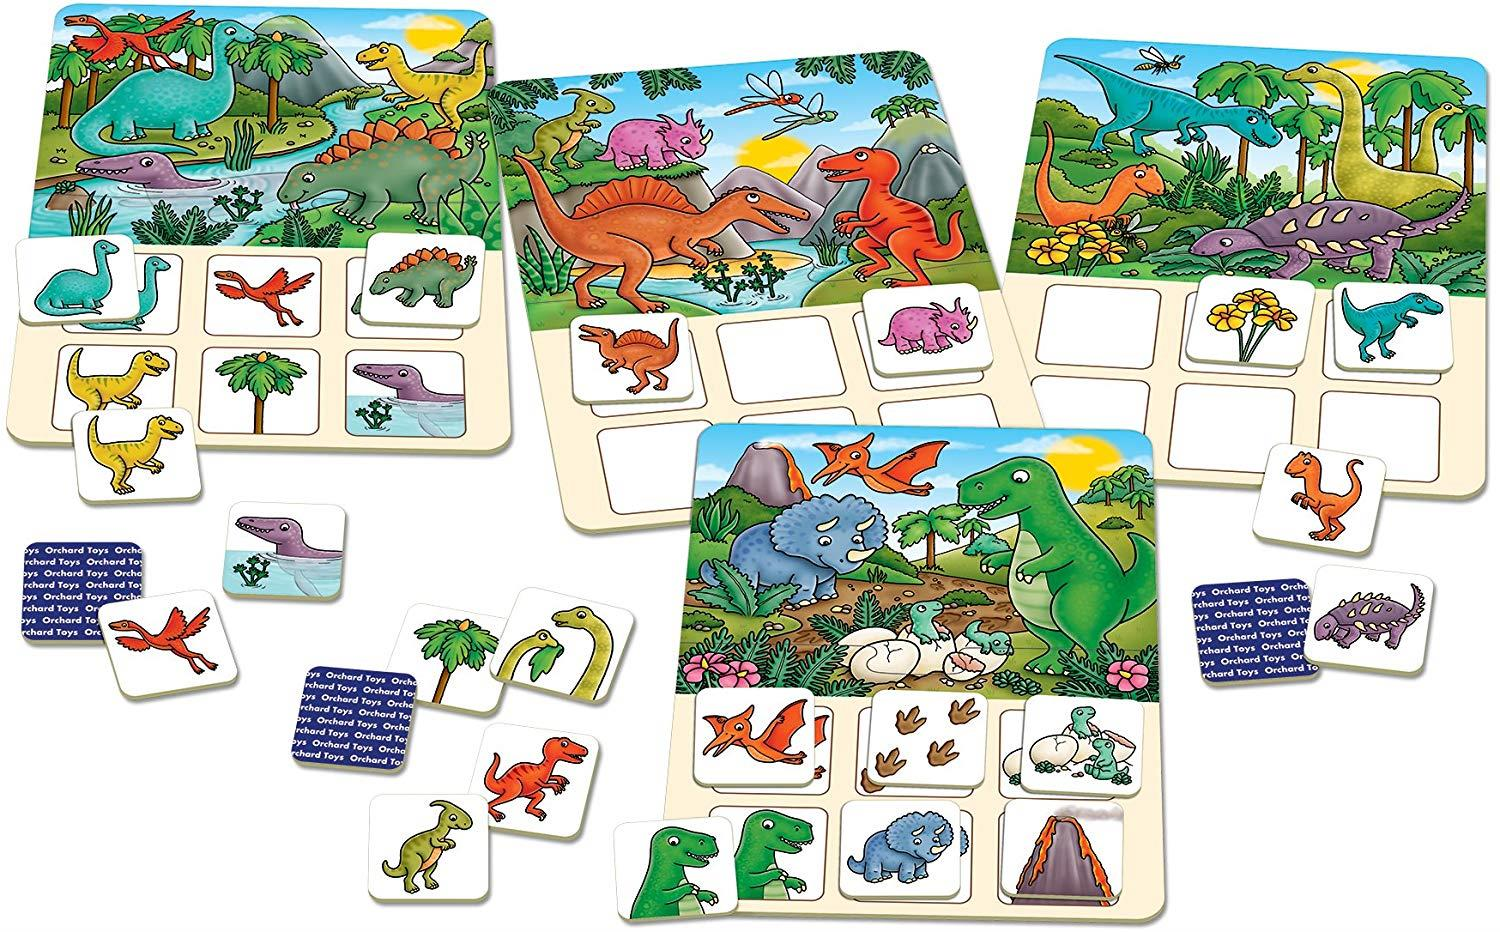 thumbnail 55 - Orchard Toys Educational Games For Kids Choose Game From Drop Down Menu